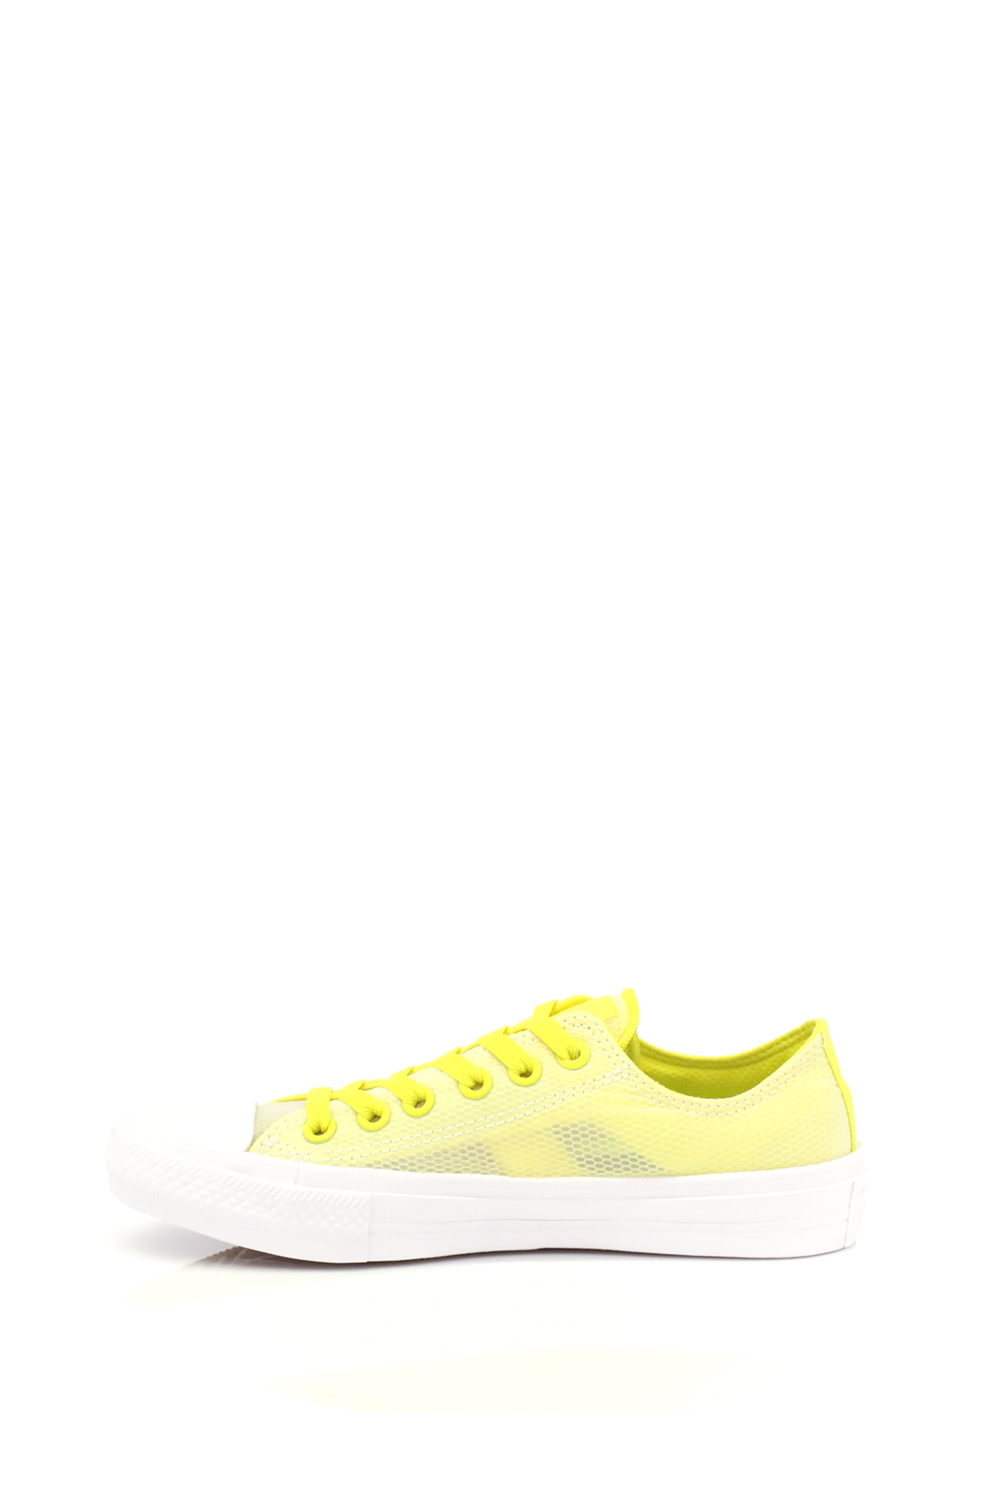 ca536ee1843 Collective Online CONVERSE – Unisex παπούτσια Chuck Taylor All Star II Ox  κίτρινα